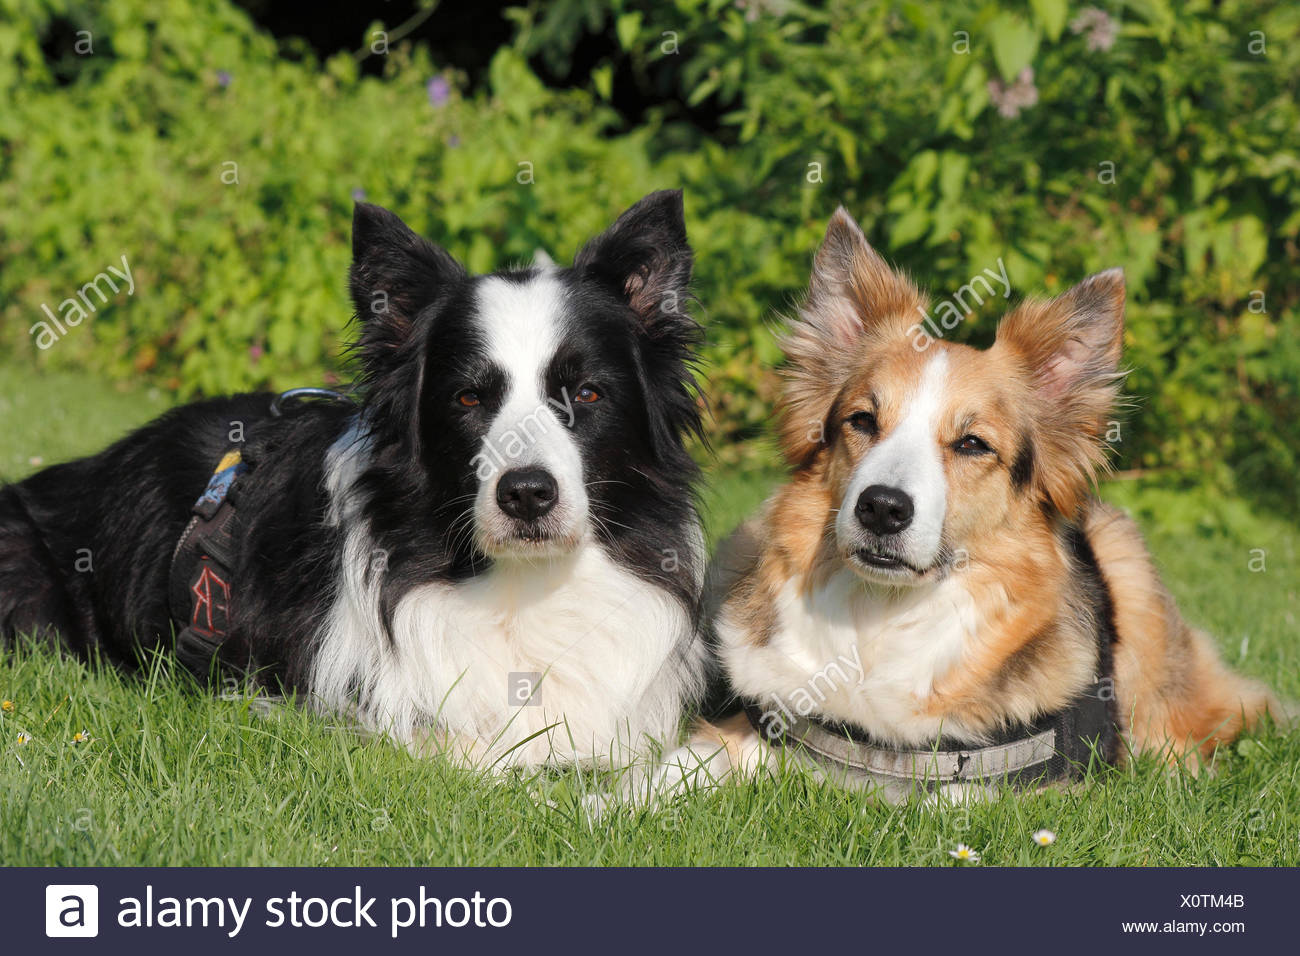 two border collies lieing in grass next to eachother Stock